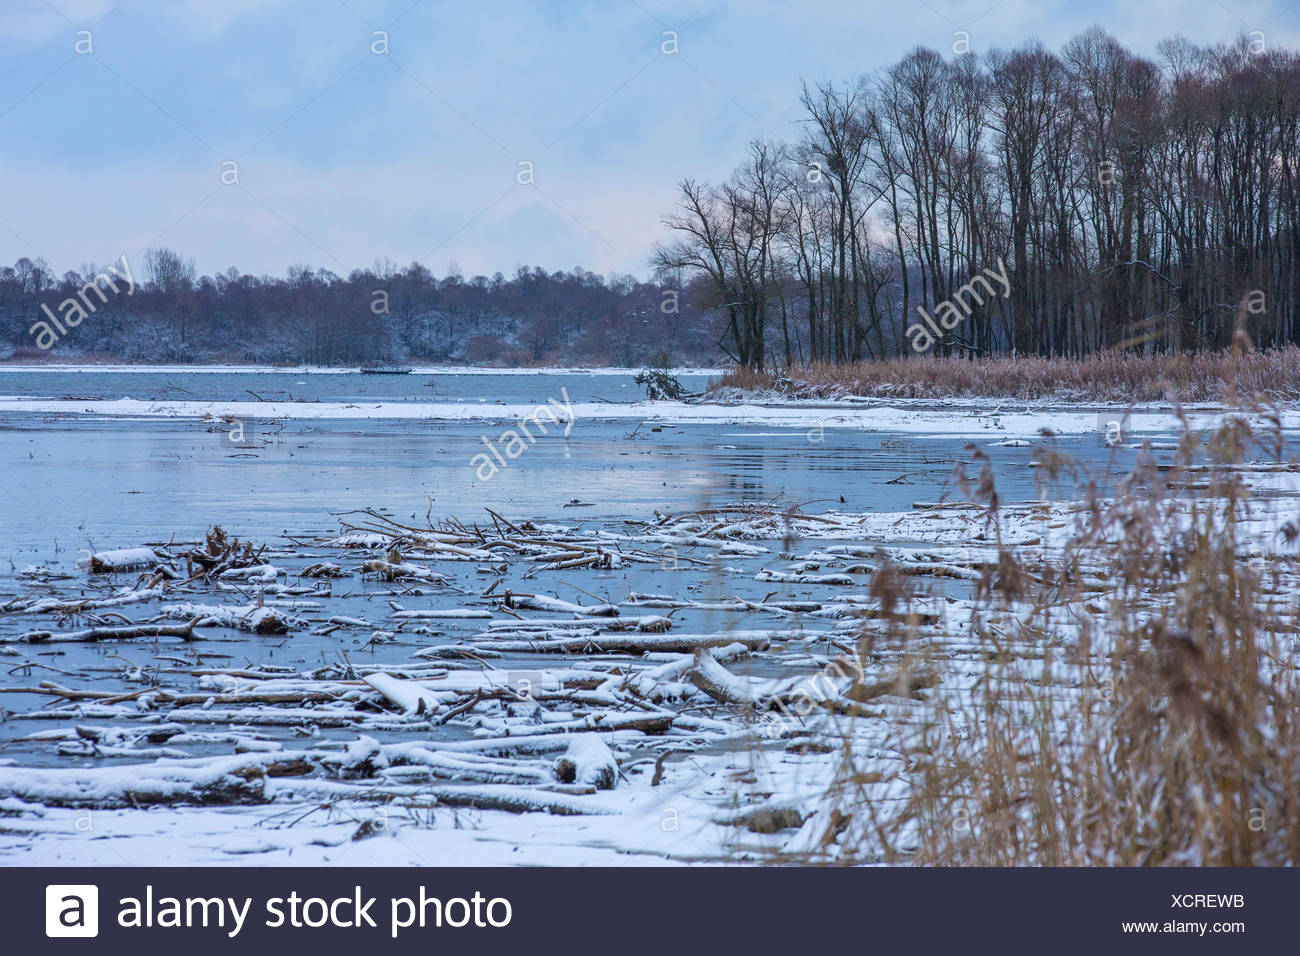 sedimentation zone Hirschauer Bucht  with dead wood in winter, Germany, Bavaria, Lake Chiemsee - Stock Image